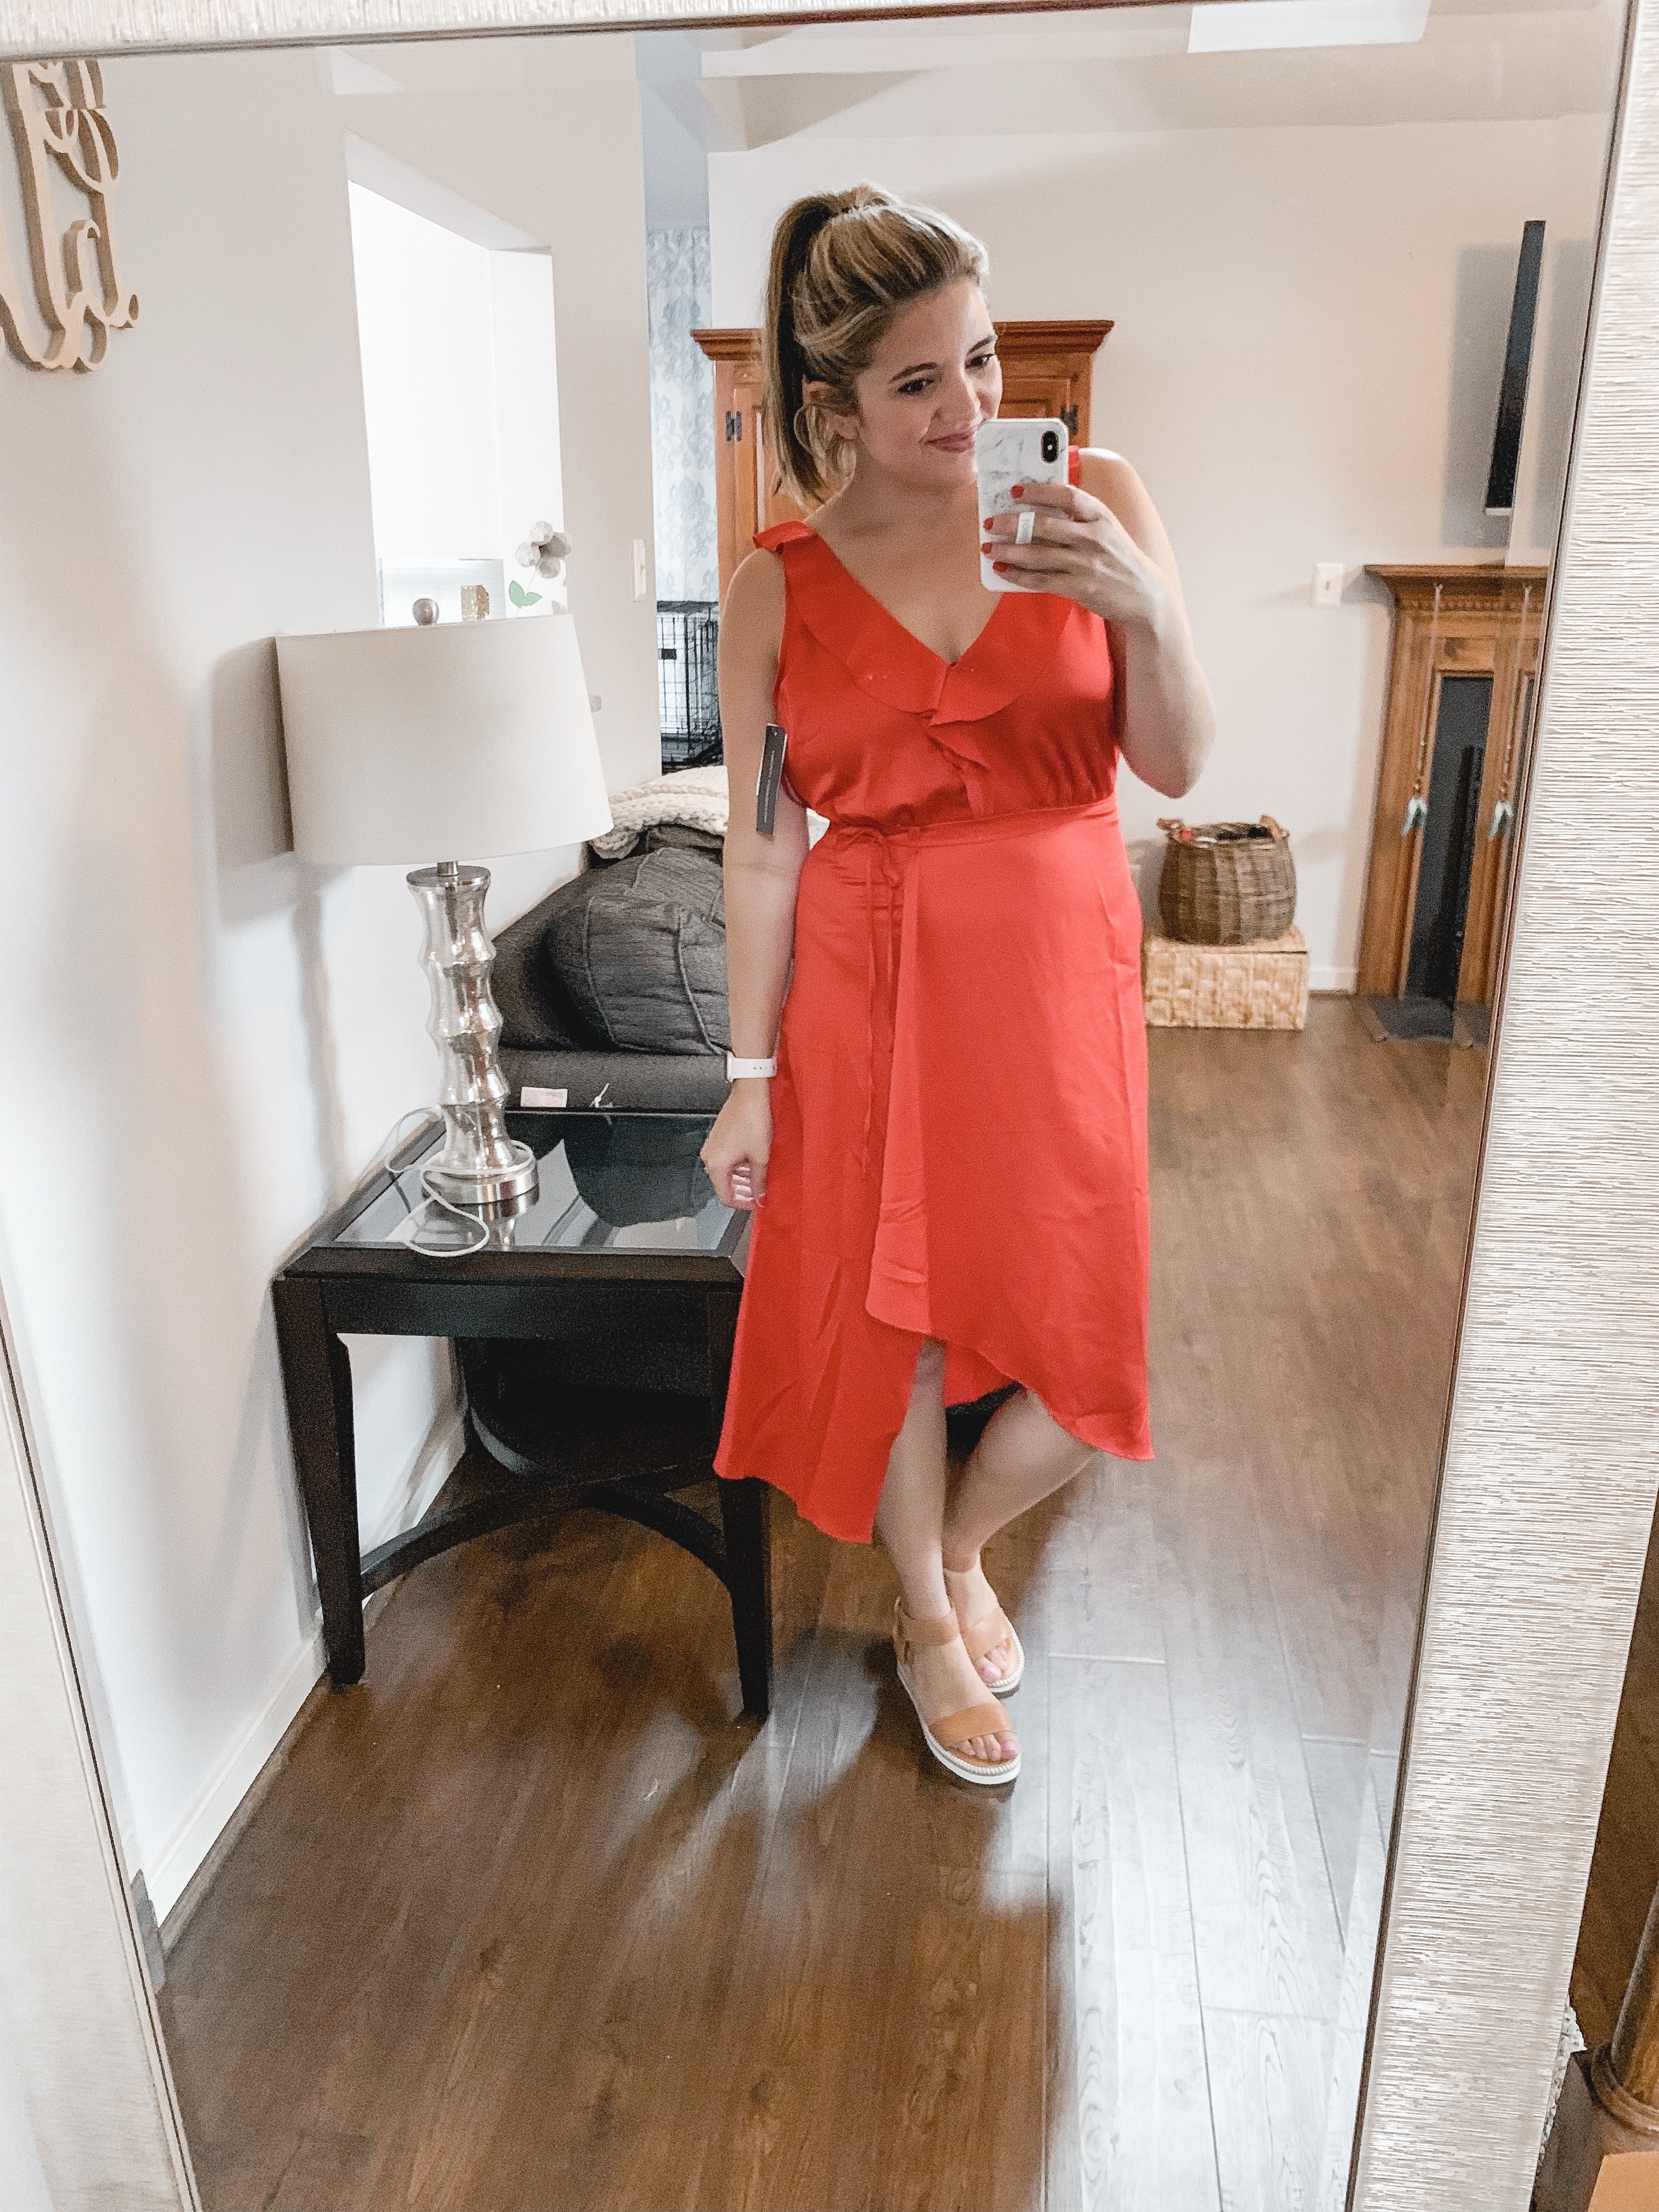 Virginia blogger, Lauren Dix, shares her experience with Personal Shopper by Prime Wardrobe! Learn how it works and see what she received in her first box!